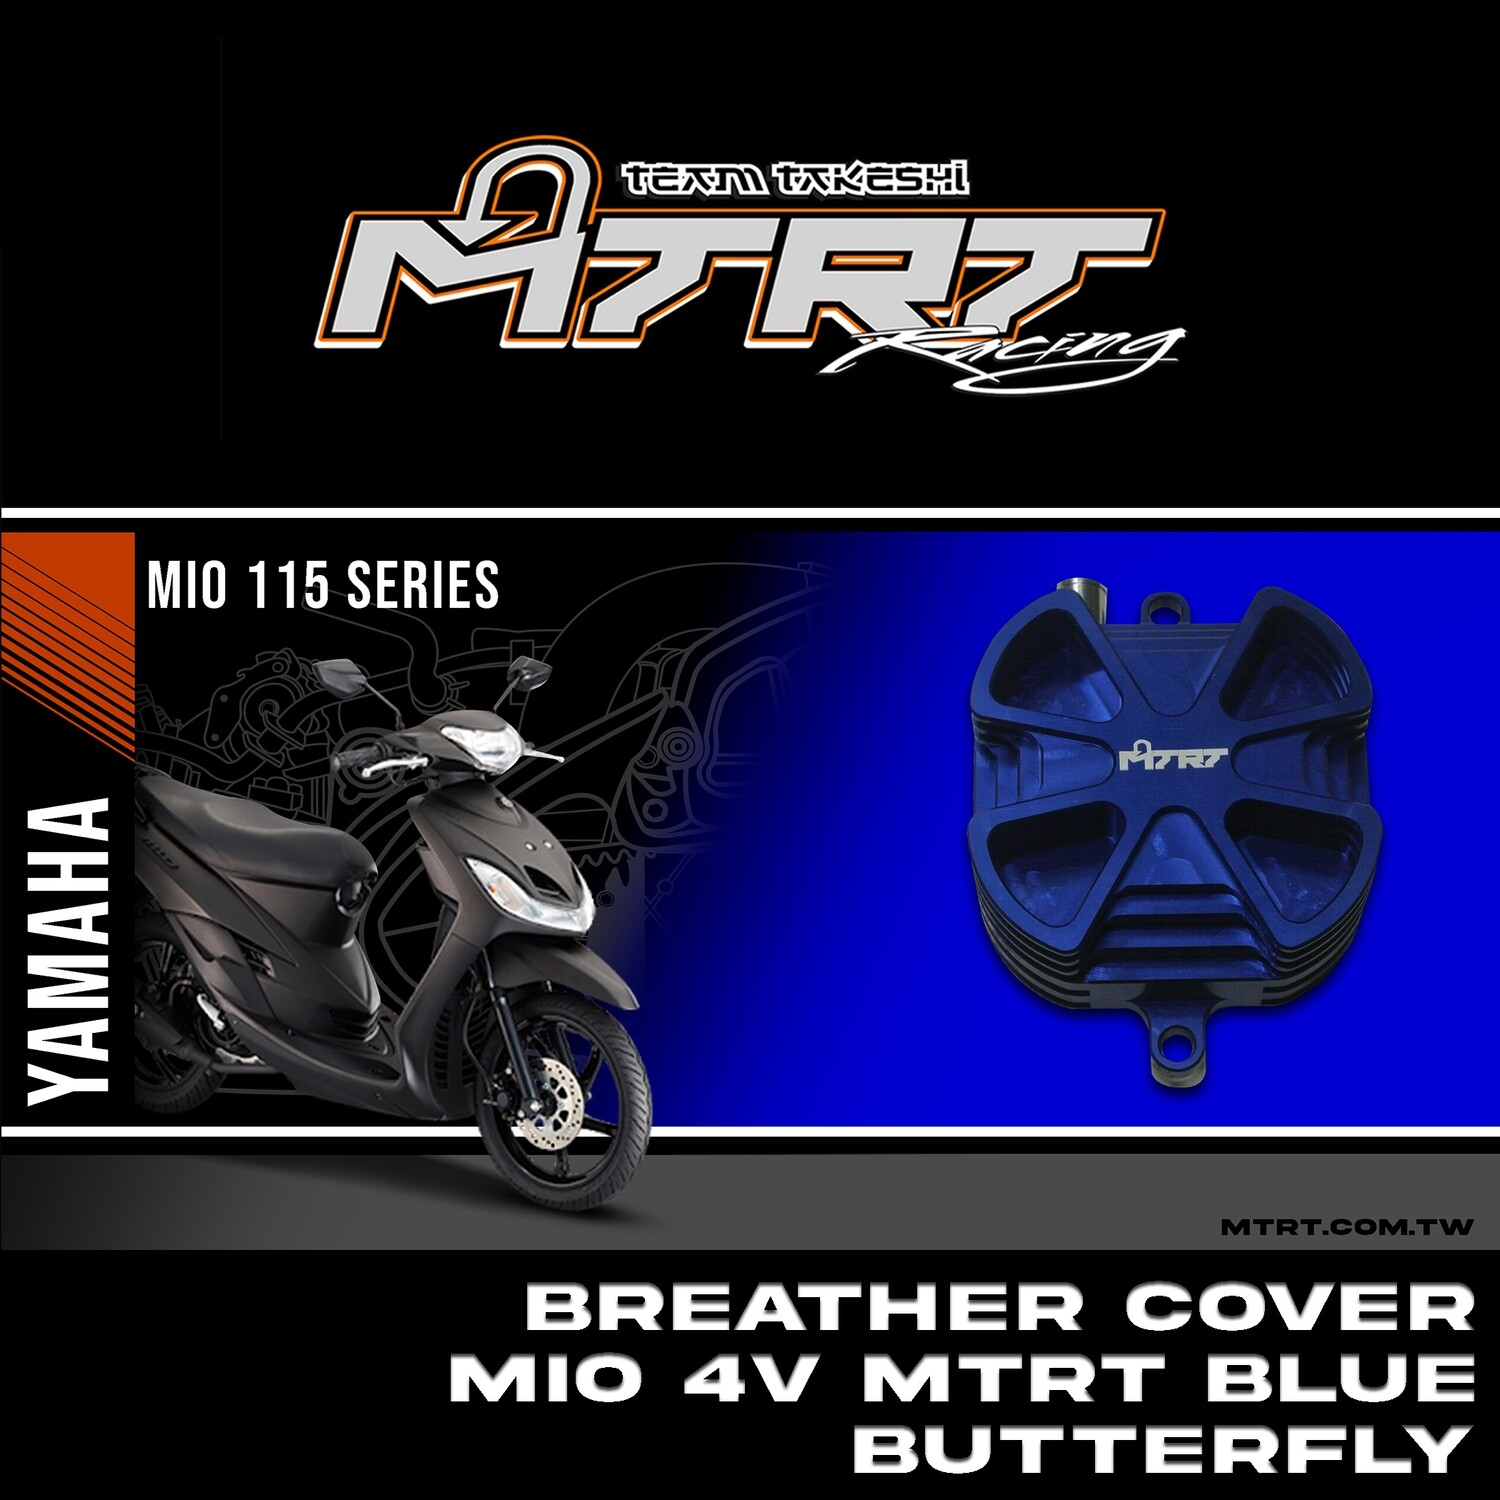 BREATHER COVER MIO 4v MTRT Blue BUTTERFLY